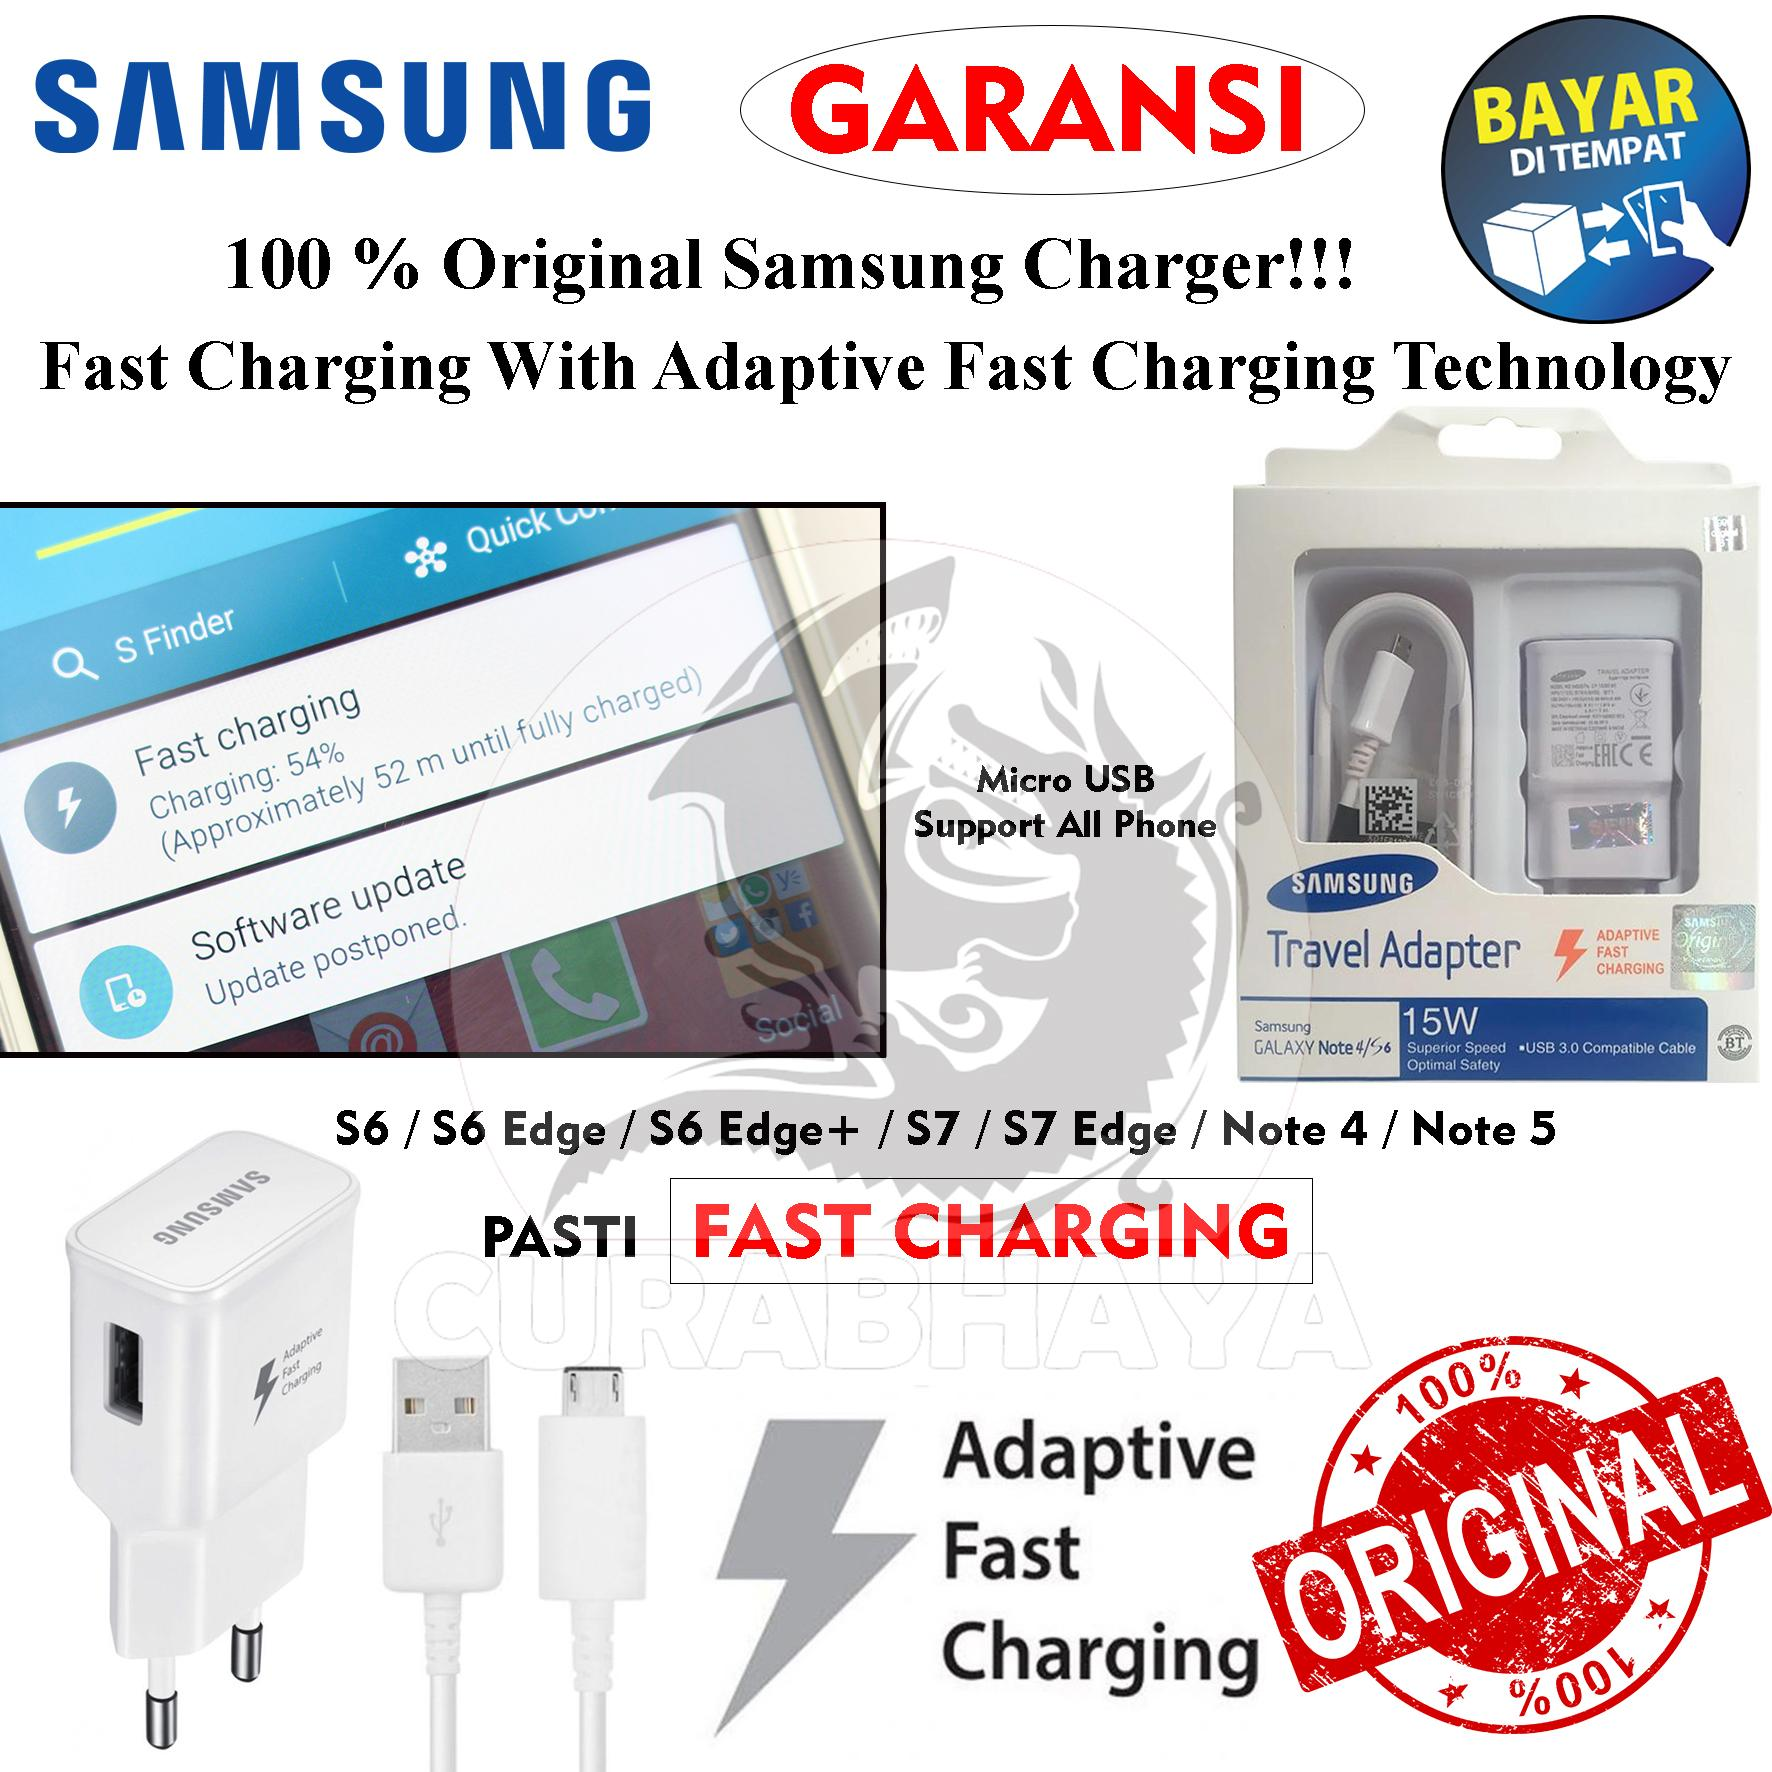 [100% Original] Authentic Travel Charger Adapter 15W Adaptive Fast Charging Micro USB 2.1A for Samsung Galaxy Note 4 / 5 / S6 / S6 Edge / S7 / S7 Edge - Putih